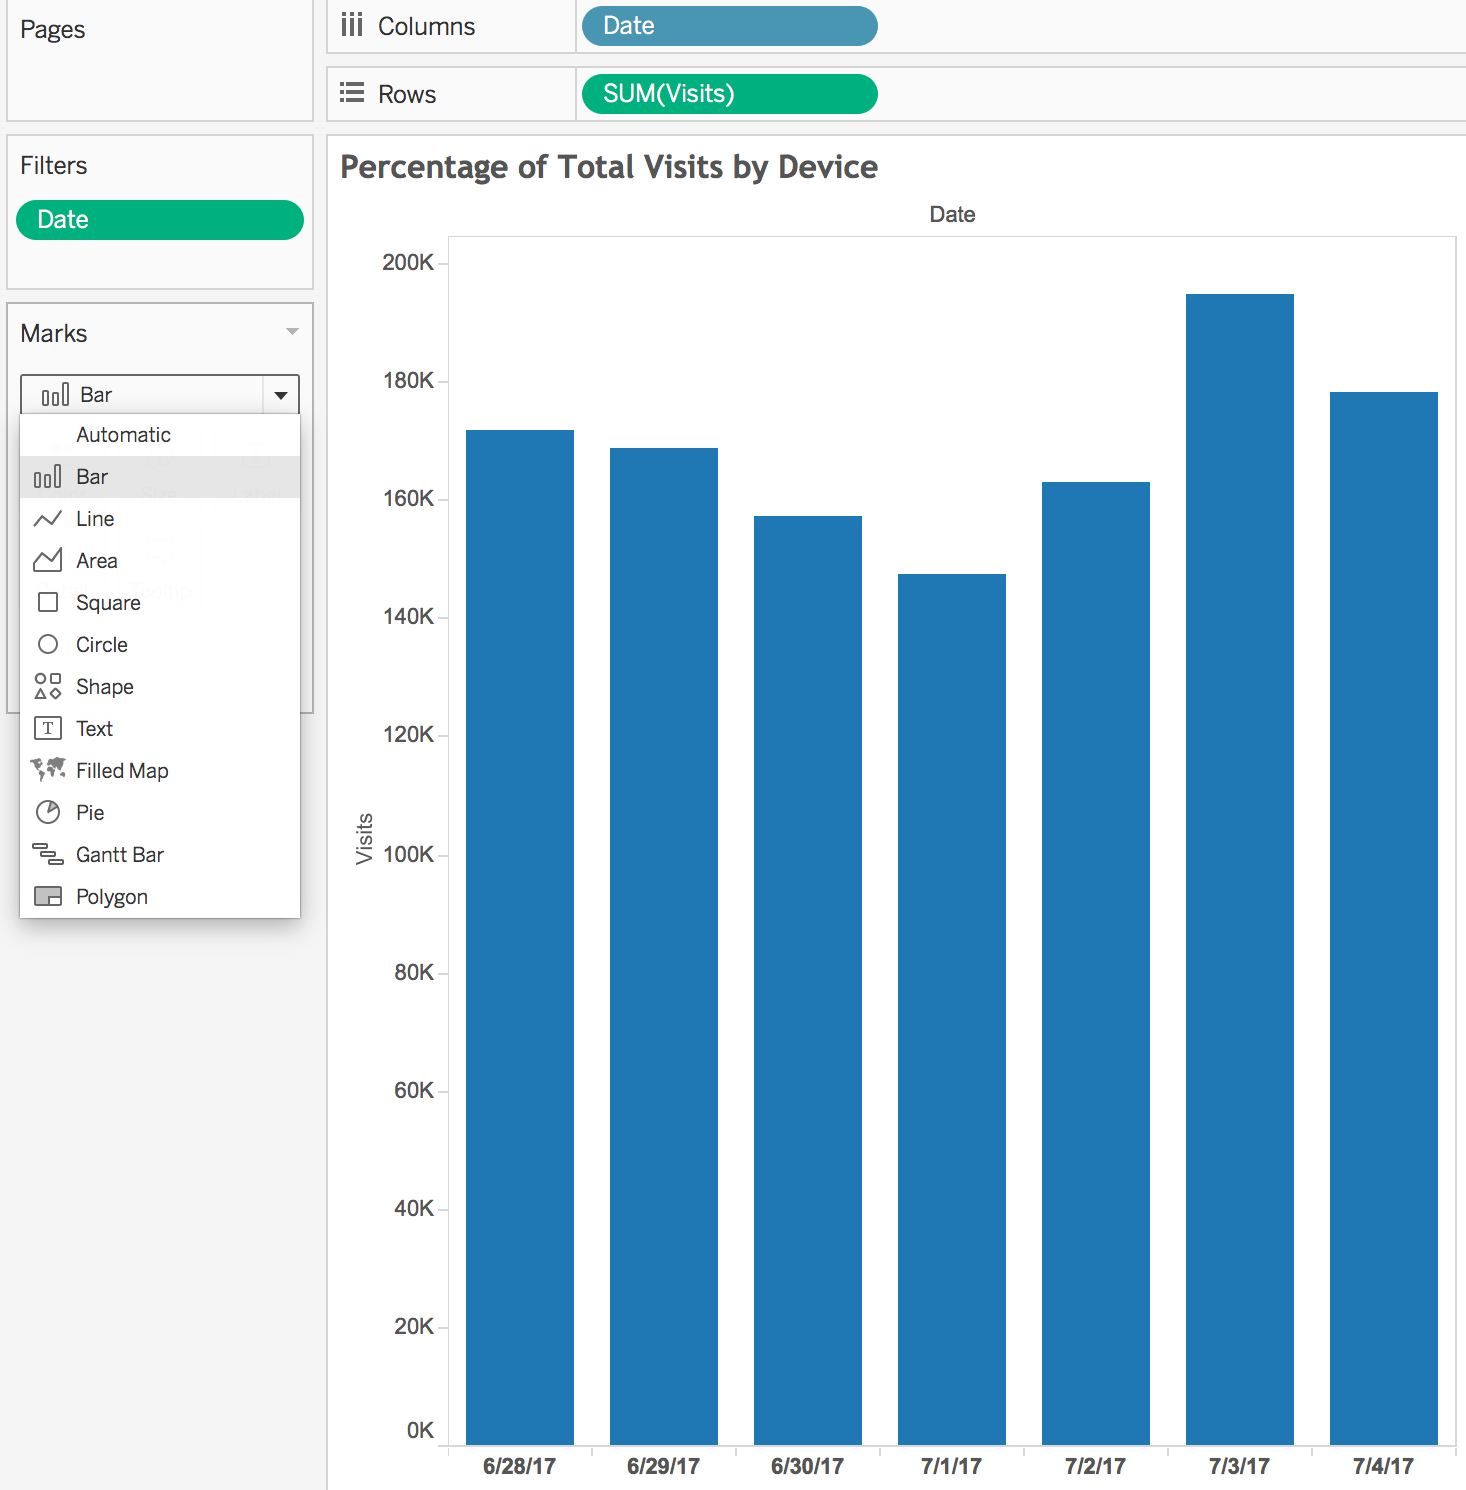 How to create a stacked bar chart that adds up to 100% in